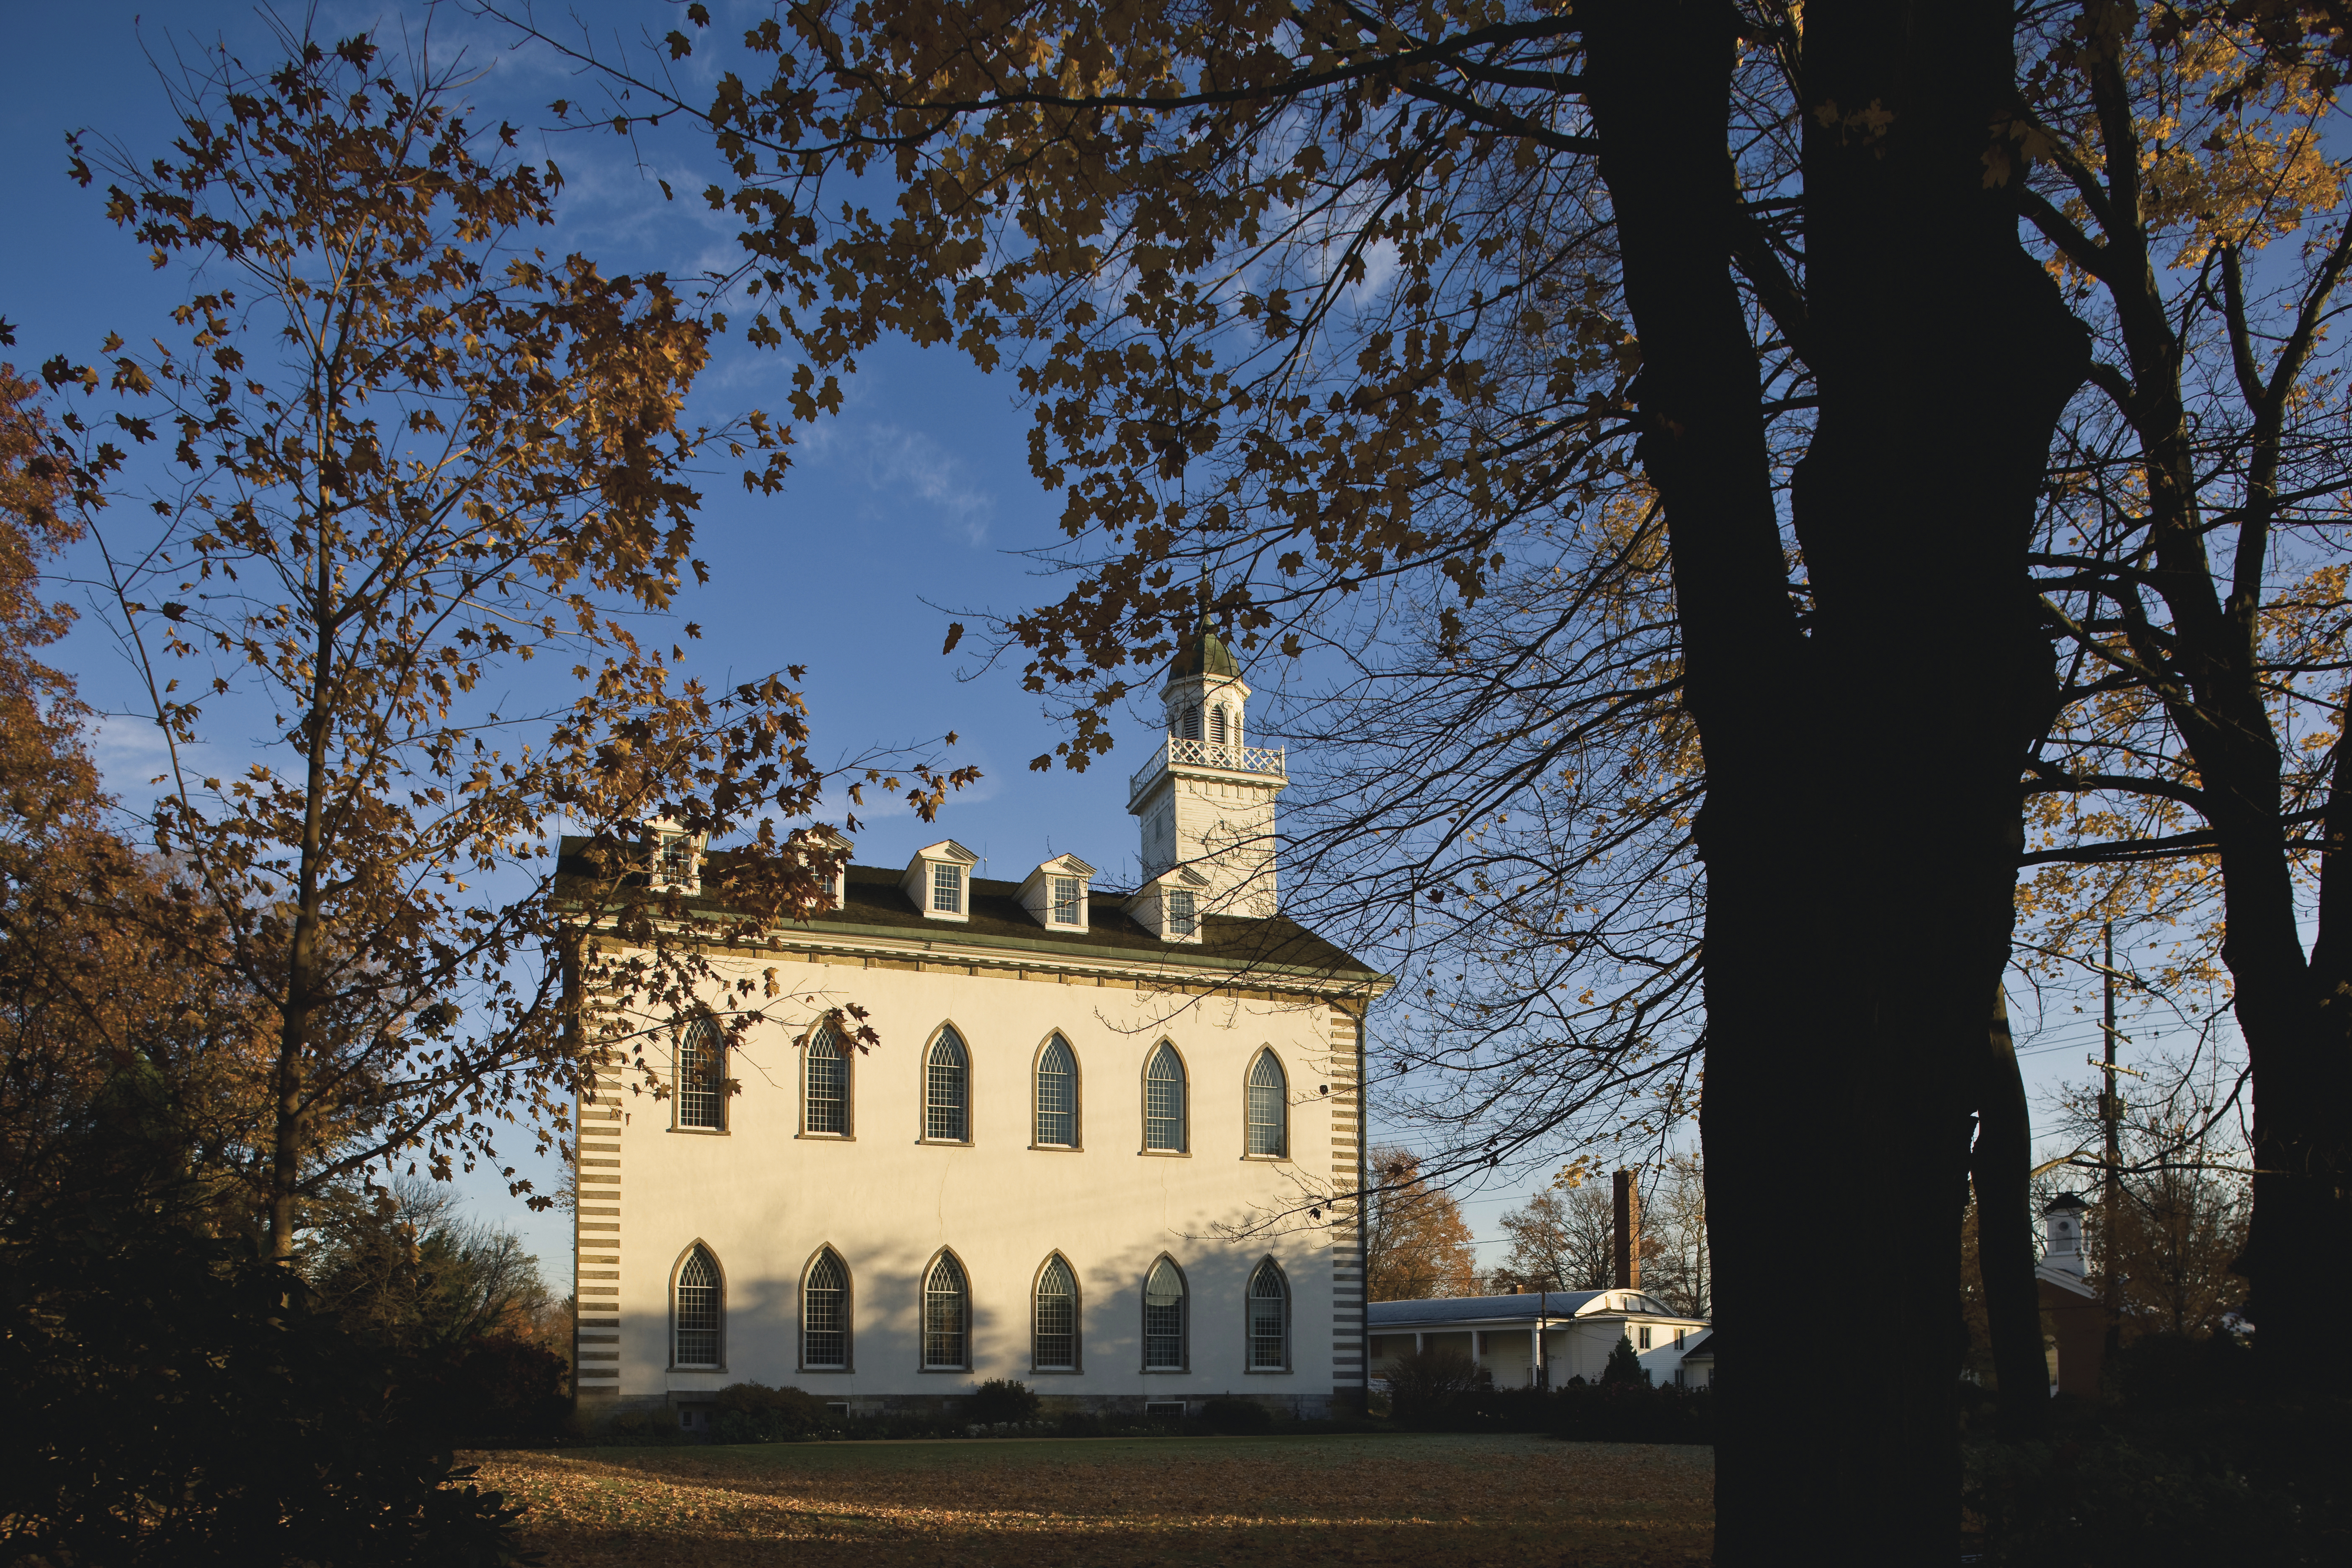 A side view of the Kirtland Temple in the fall, including scenery.